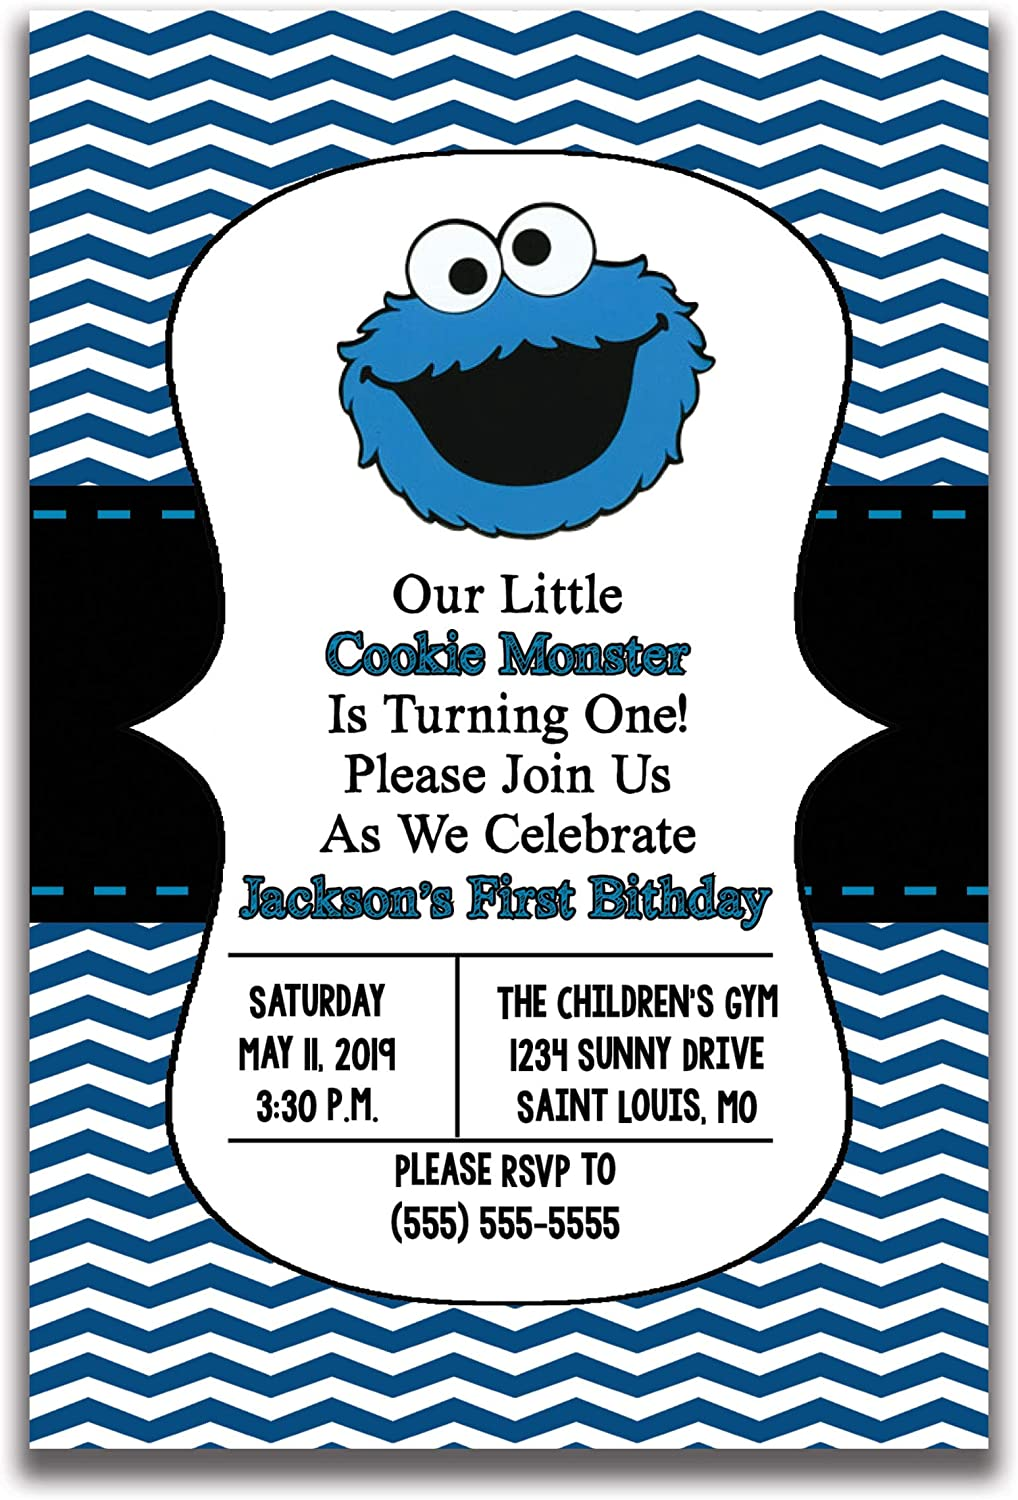 the melange market cookie monster inspired birthday party invitation 20 invitations per set envelopes included 4 inches by 6 inches party supplies